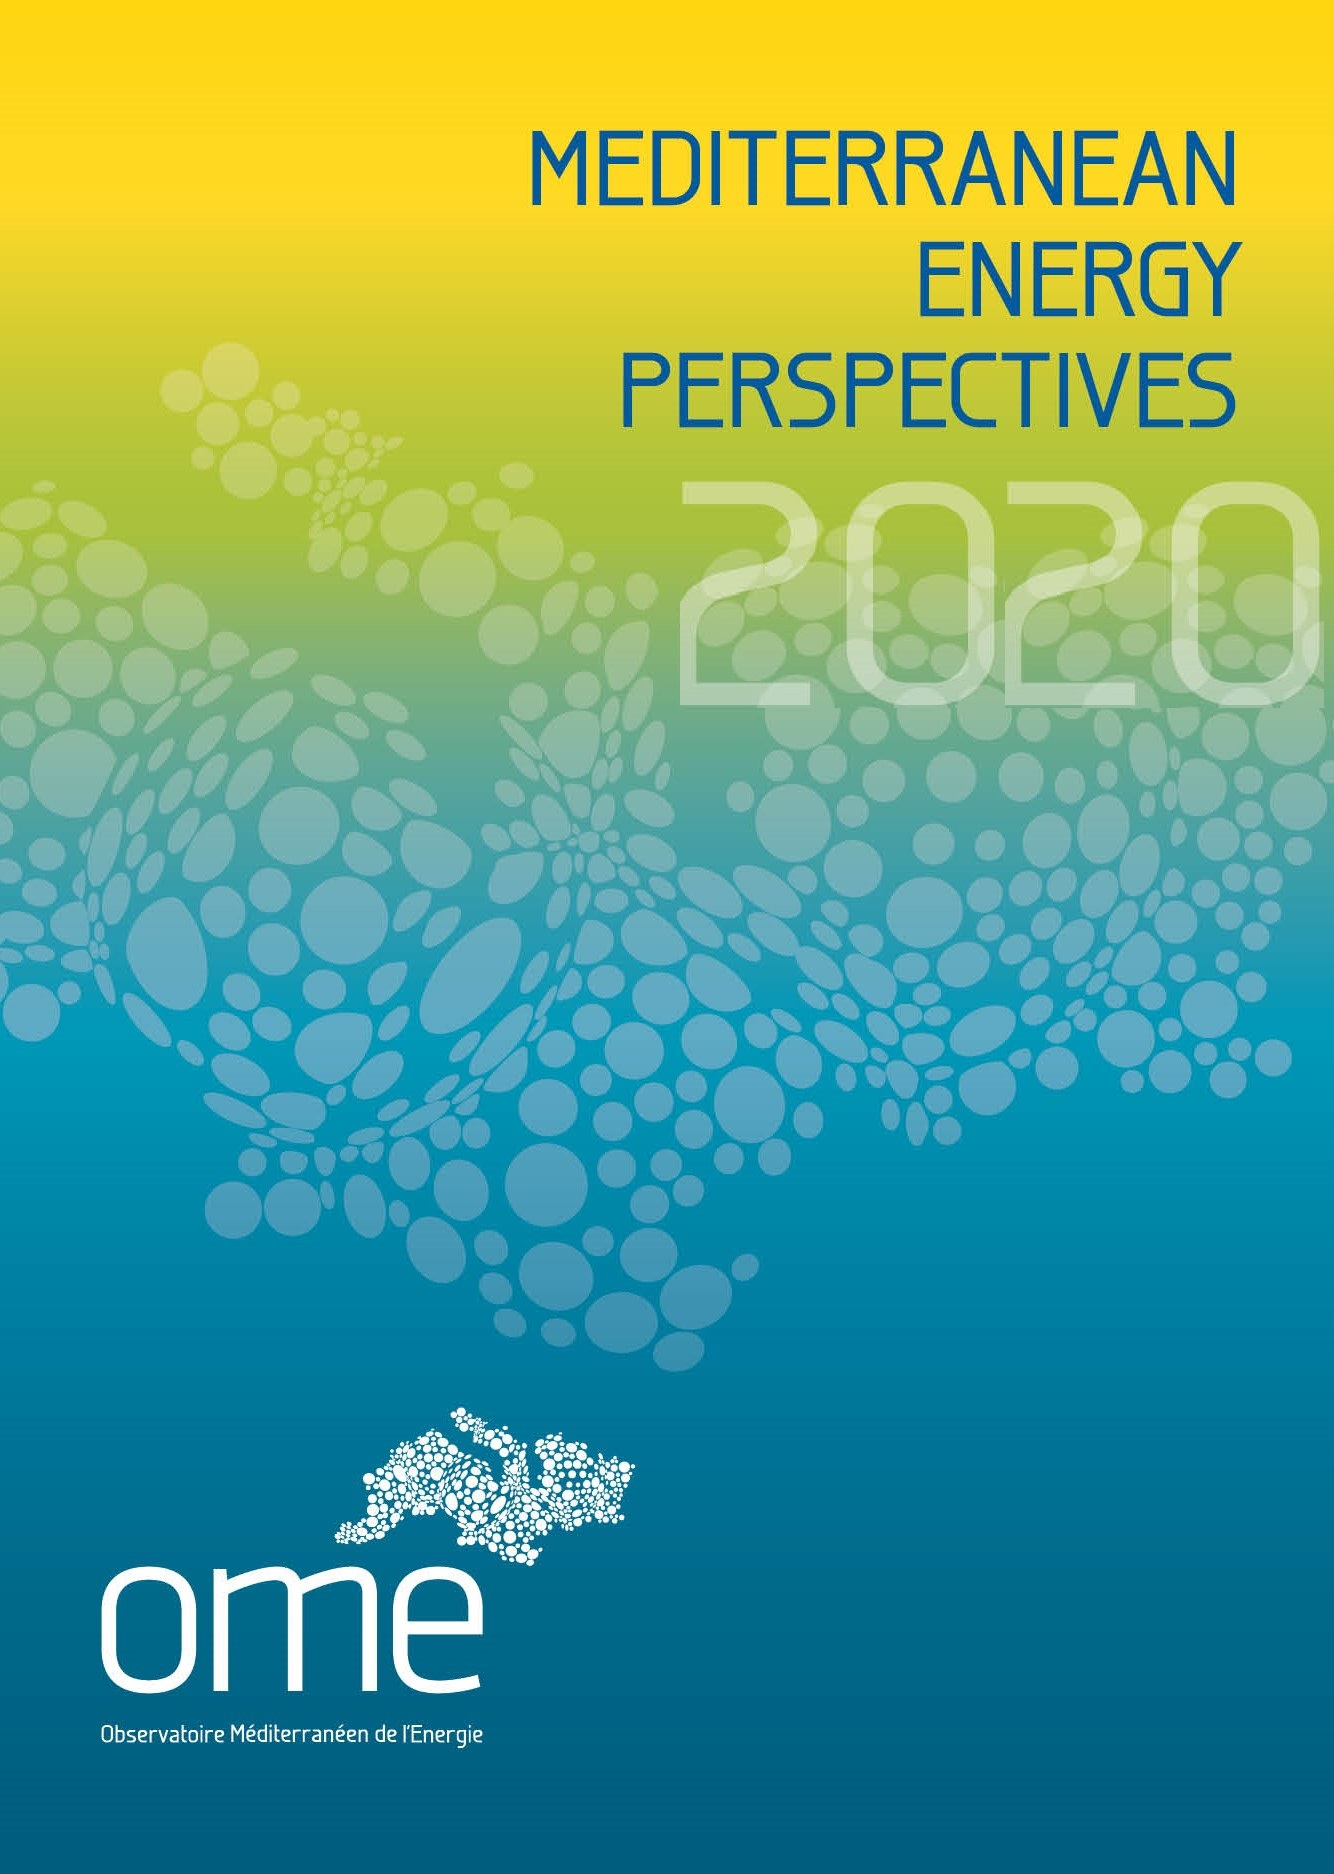 MEP 2020 (to be released in Dec. 2020)